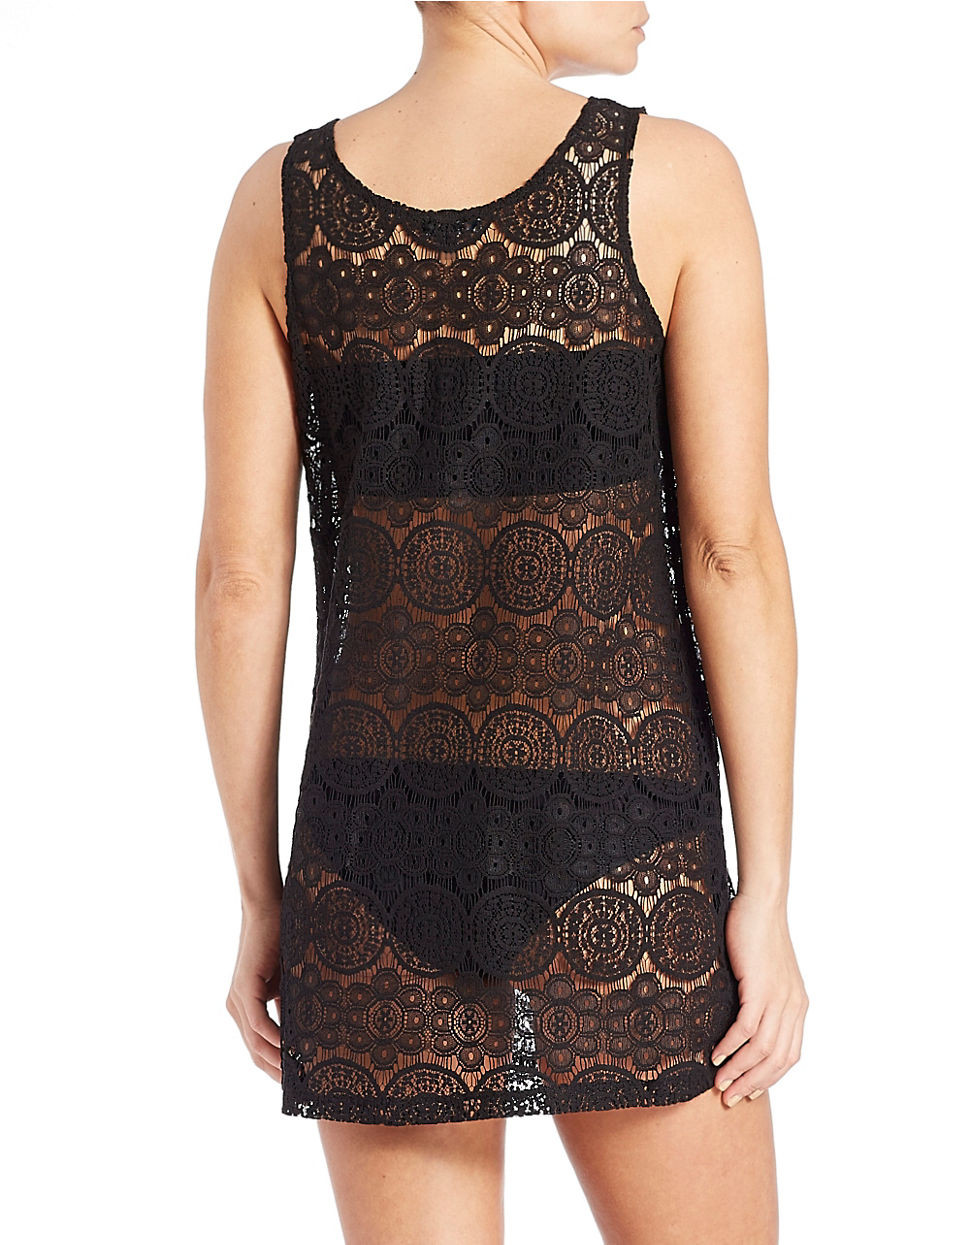 Fresh J Valdi Crocheted Cover Up In Black Black Crochet Cover Up Of Superb 42 Images Black Crochet Cover Up